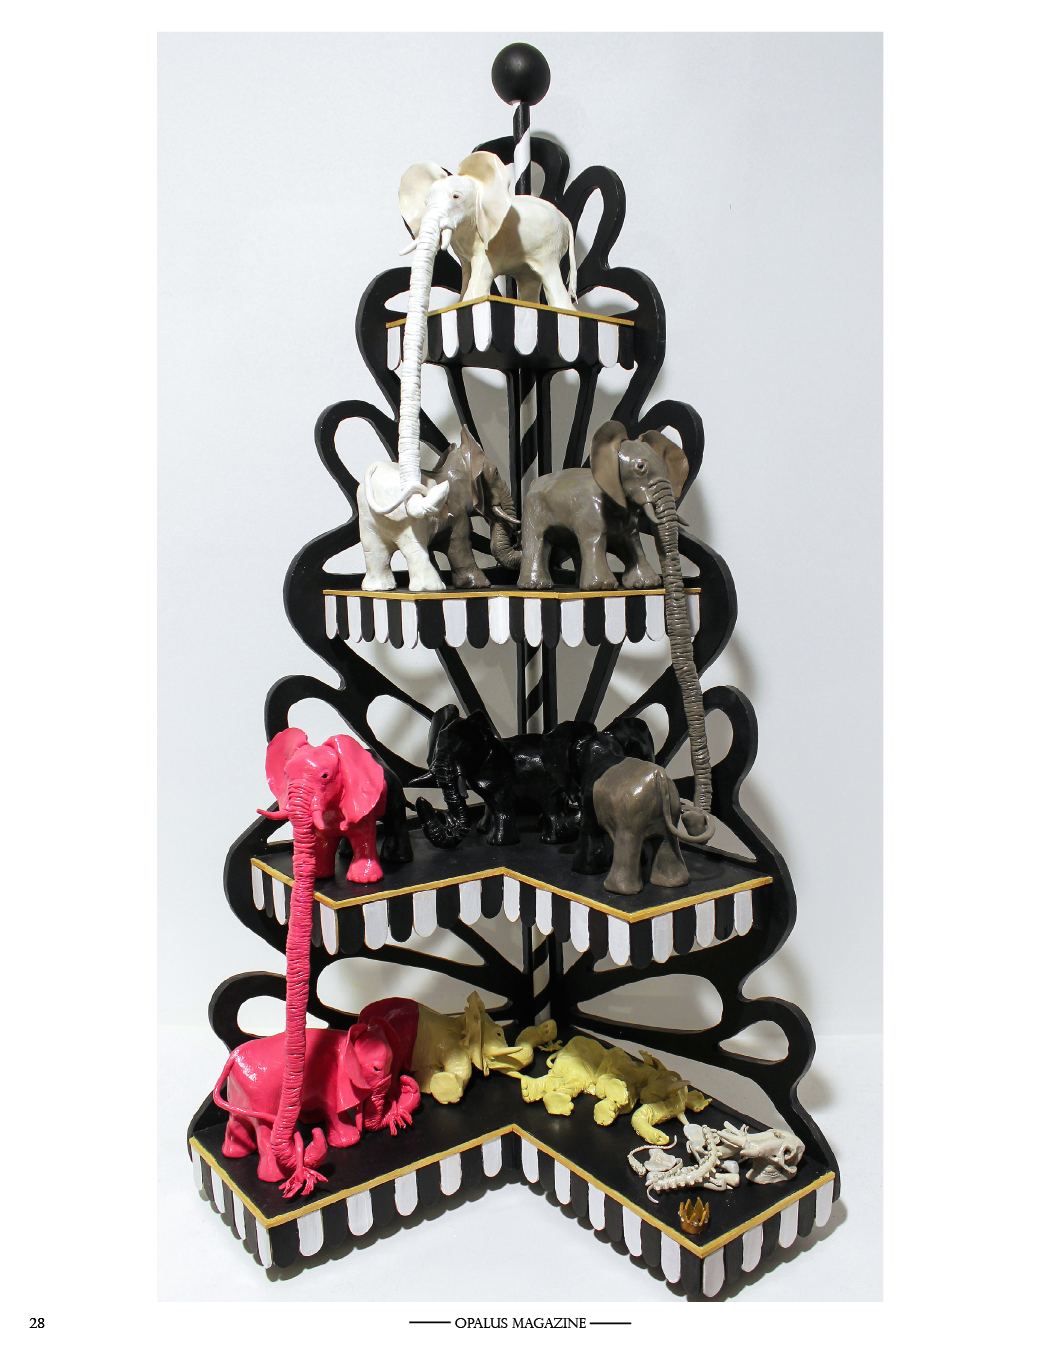 "Title  -  The Decline of the elephant king  (Sculpture)  Size  -  27"" x 16""    Medium  -  polymer clay, acrylic paint, wood, plastic diamonds"